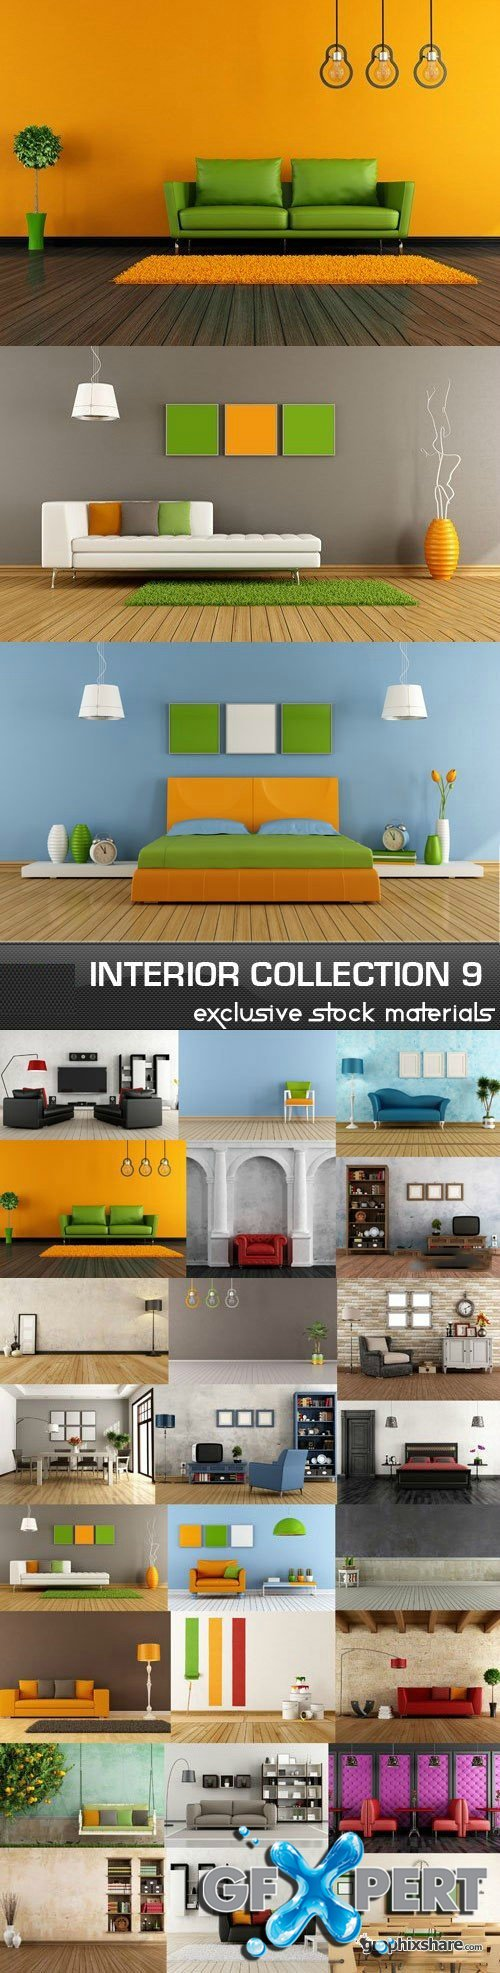 Collection of Interiors Vol.9, 25xJPG